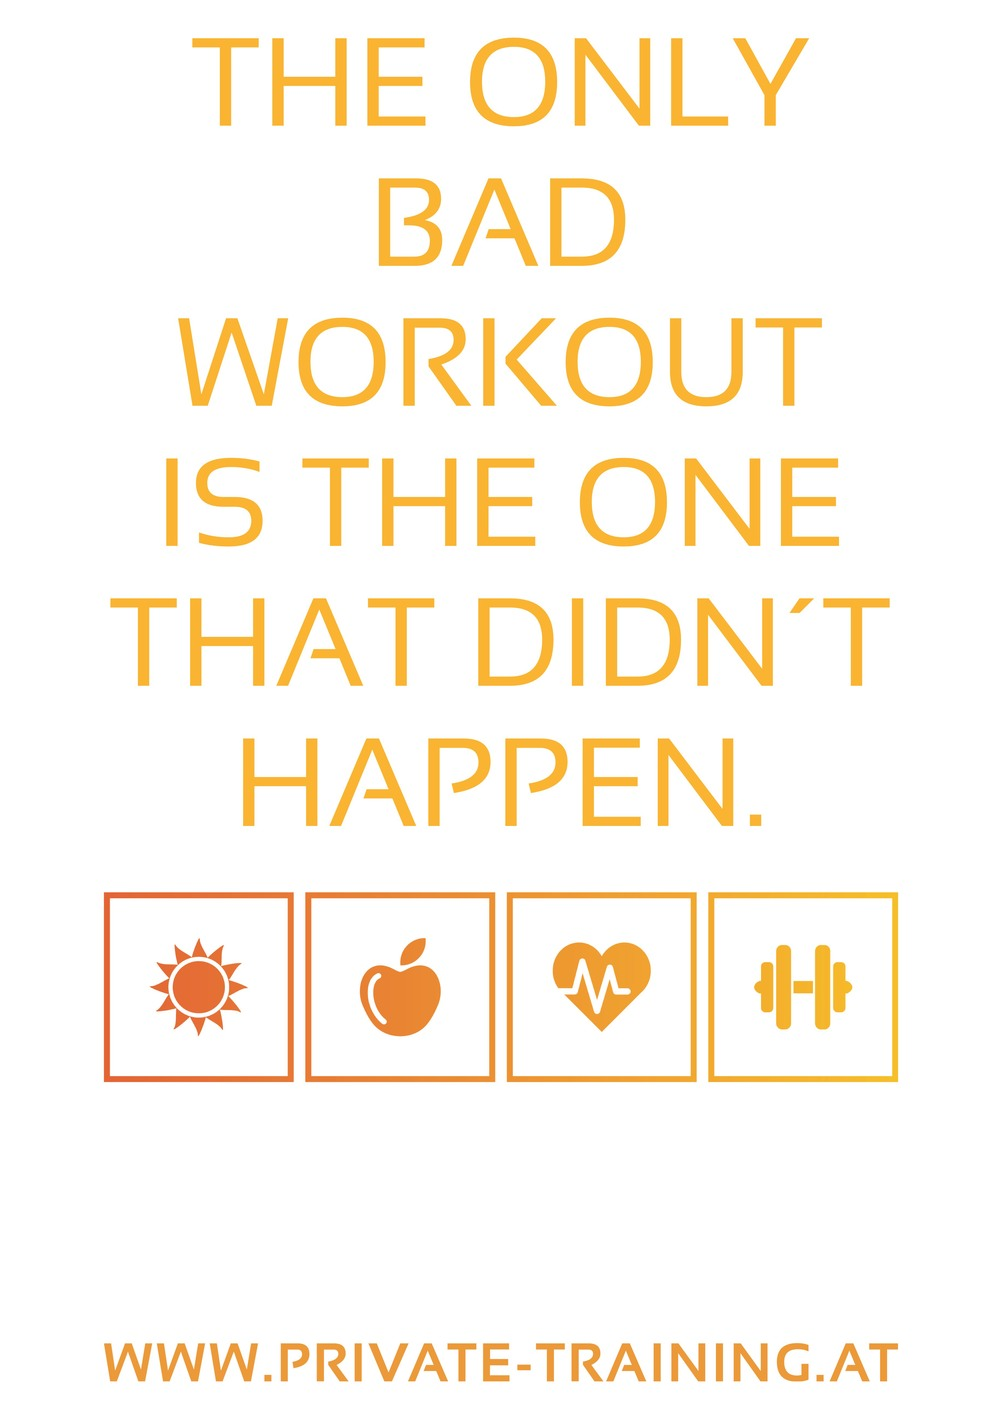 The_only_bad_workout_is_the_one_that_didn´t_happen